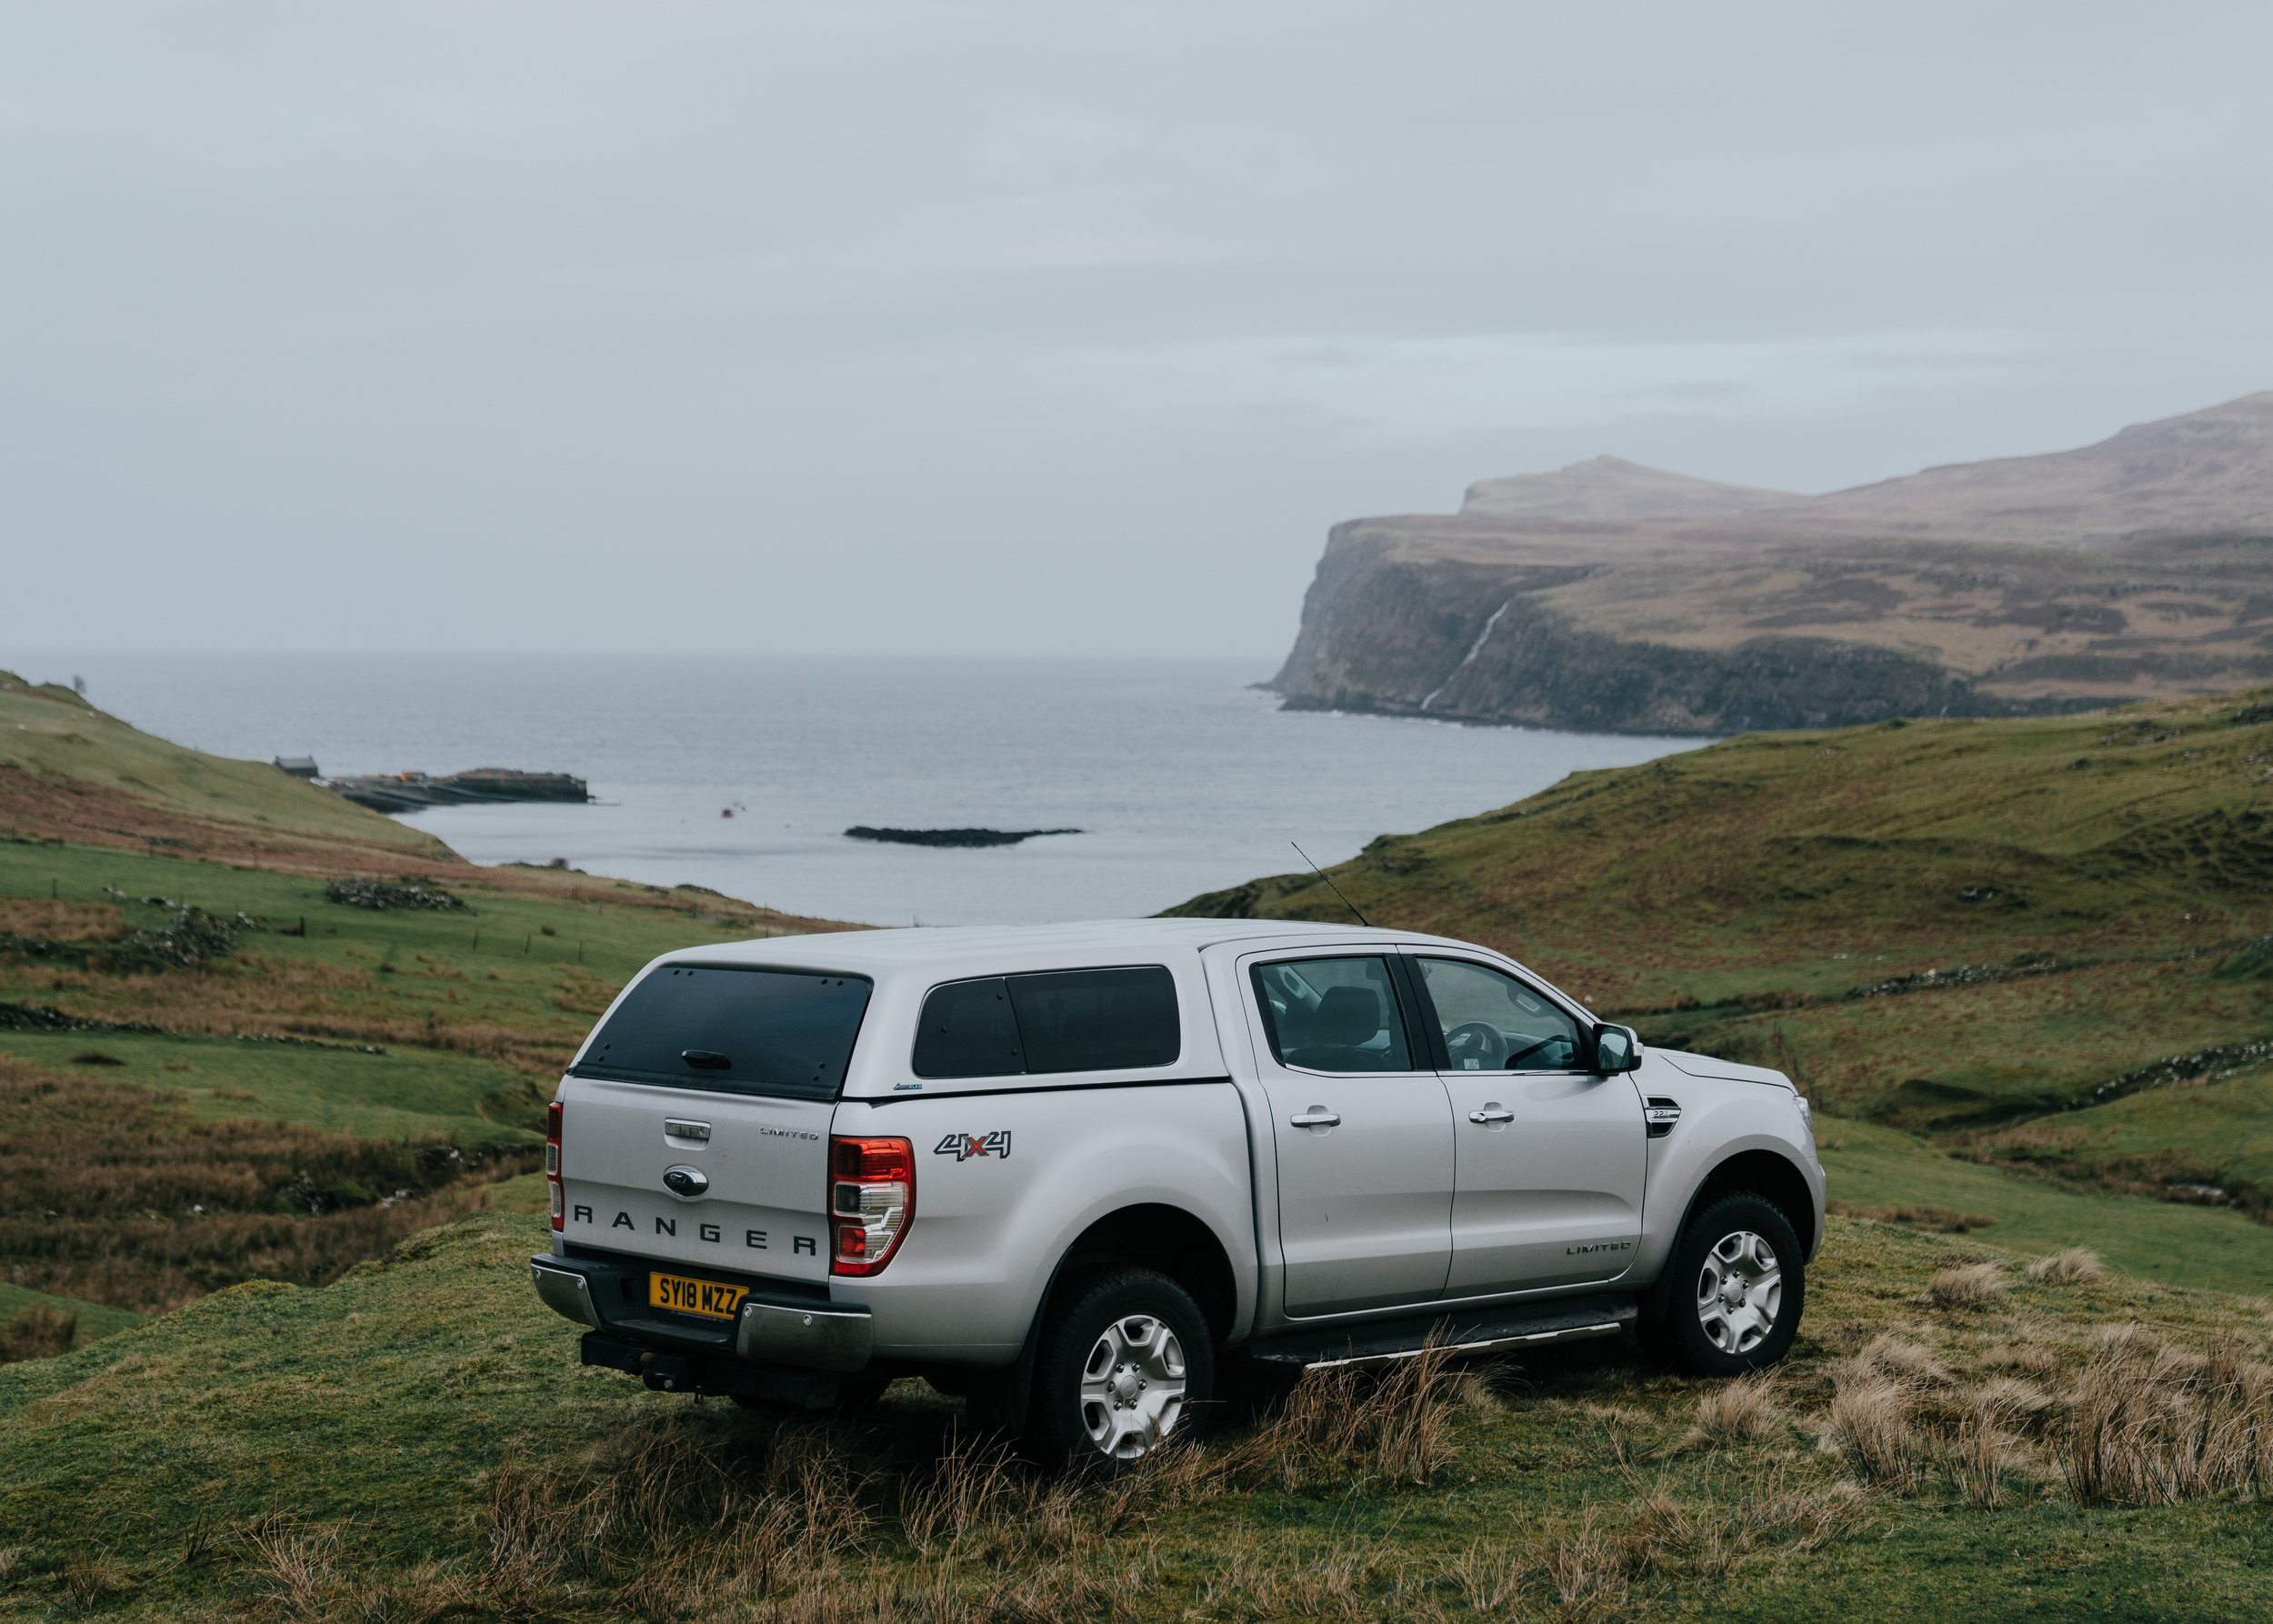 Ranger on the Isle of Skye (1 of 1).jpg